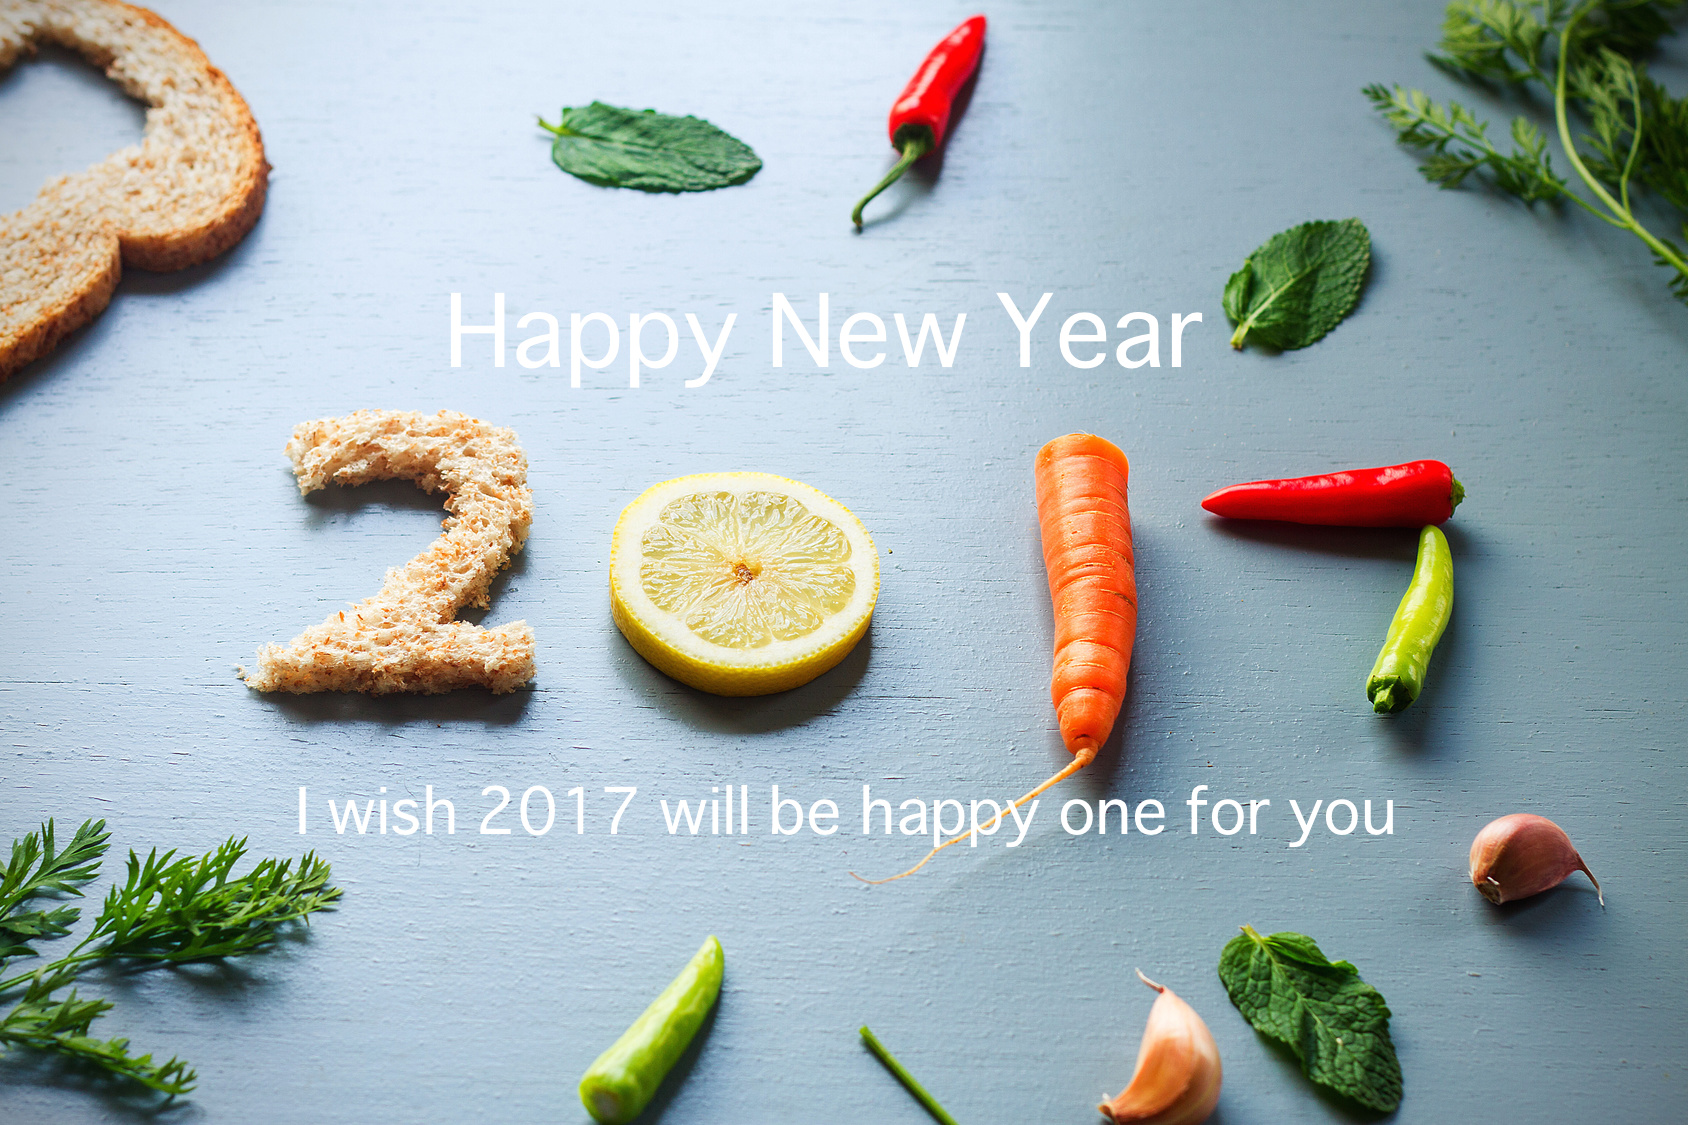 A food preparation on light blue rustic wooden table showing number 2017, old bread, chillies, carrots, peppermint, cloves of garlic, lemon, number 2017, new year letter, overhead shot